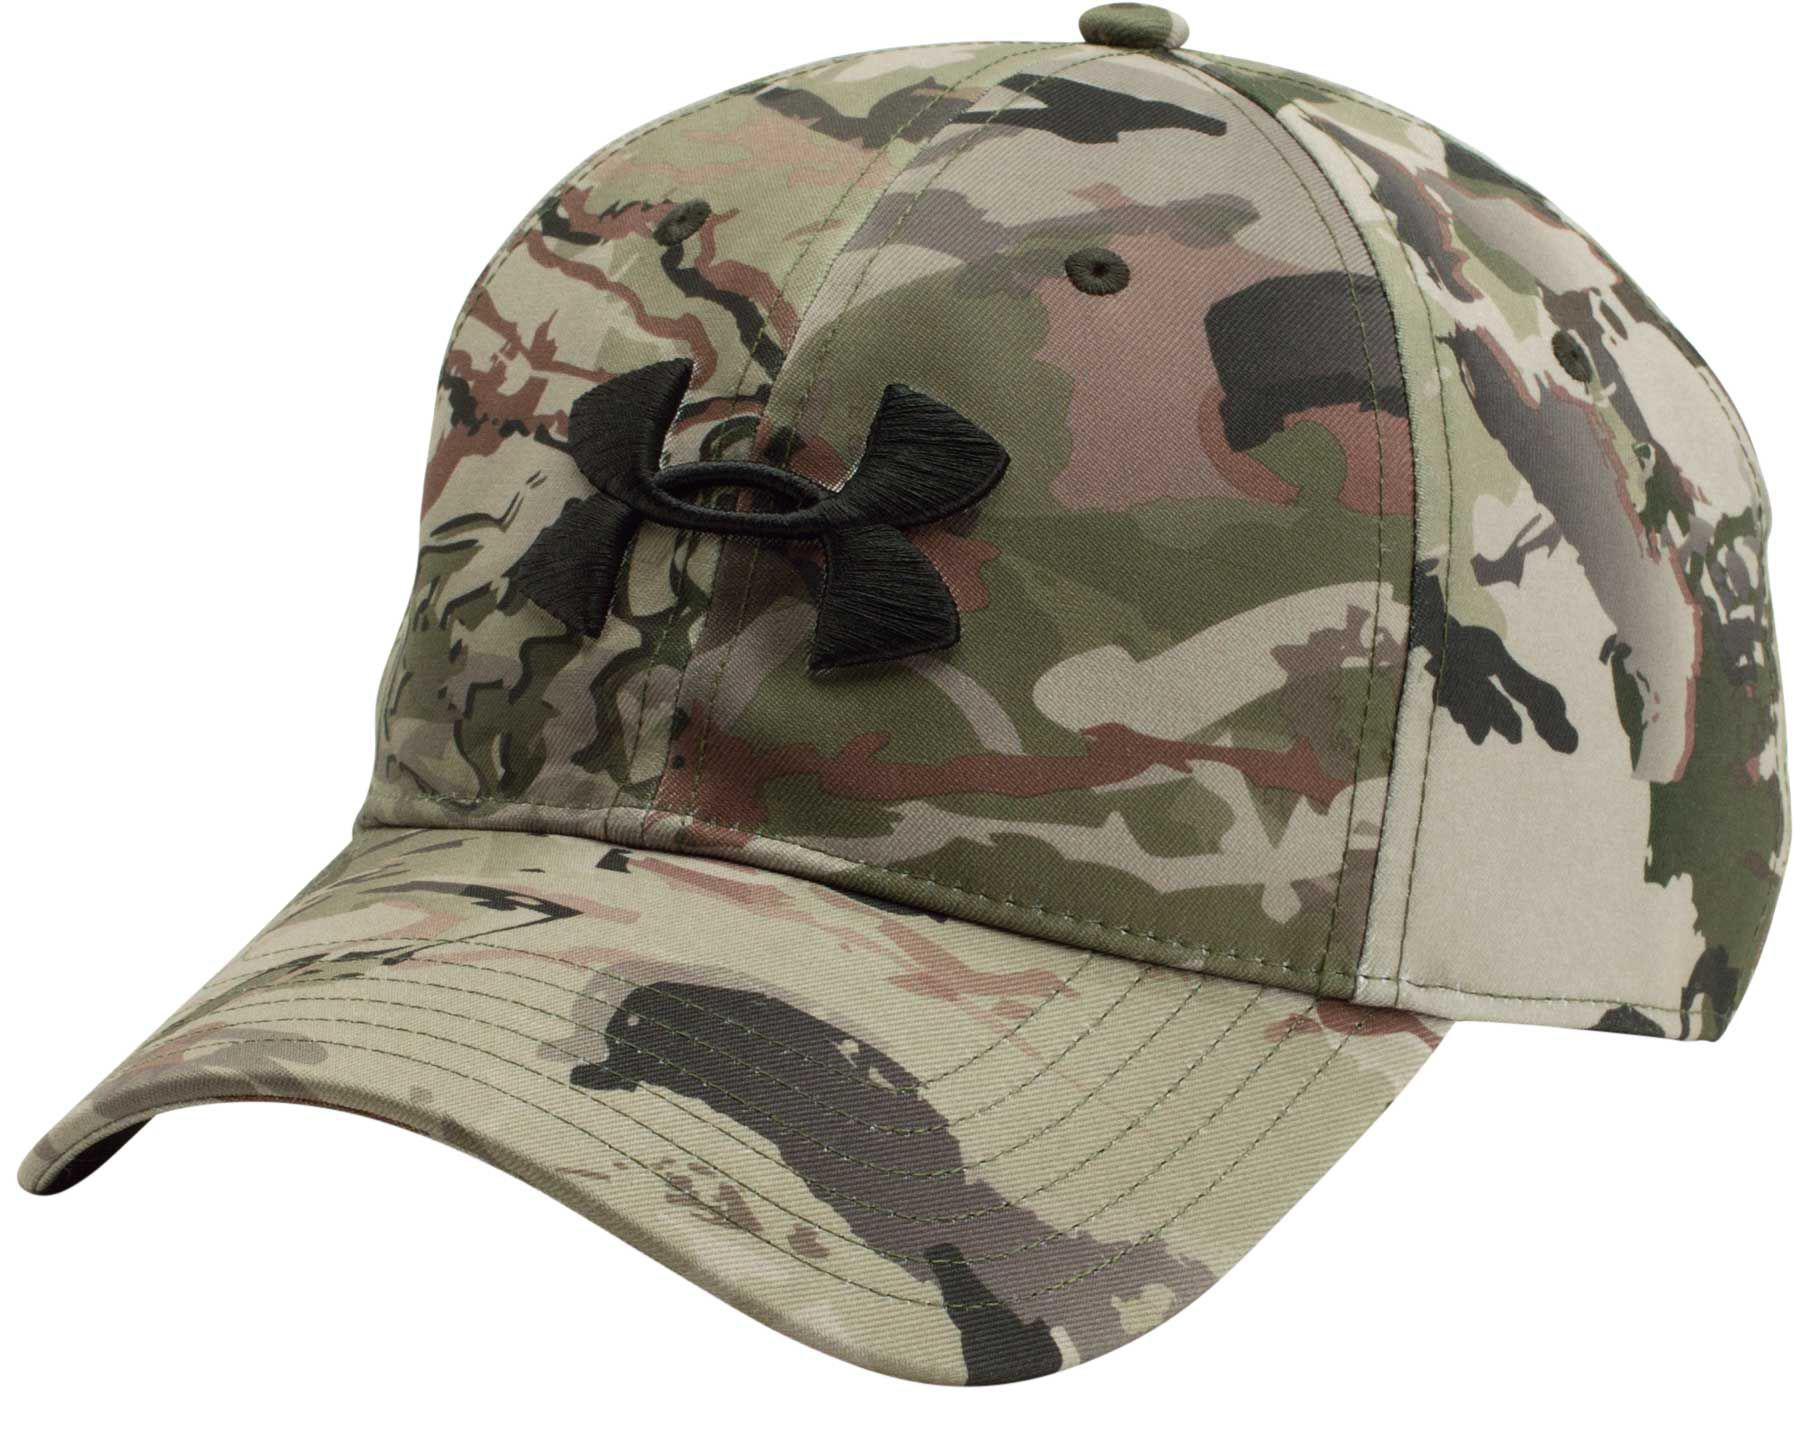 fc1fc42cc01 Under Armour - Multicolor Camo 2.0 Hunting Hat for Men - Lyst